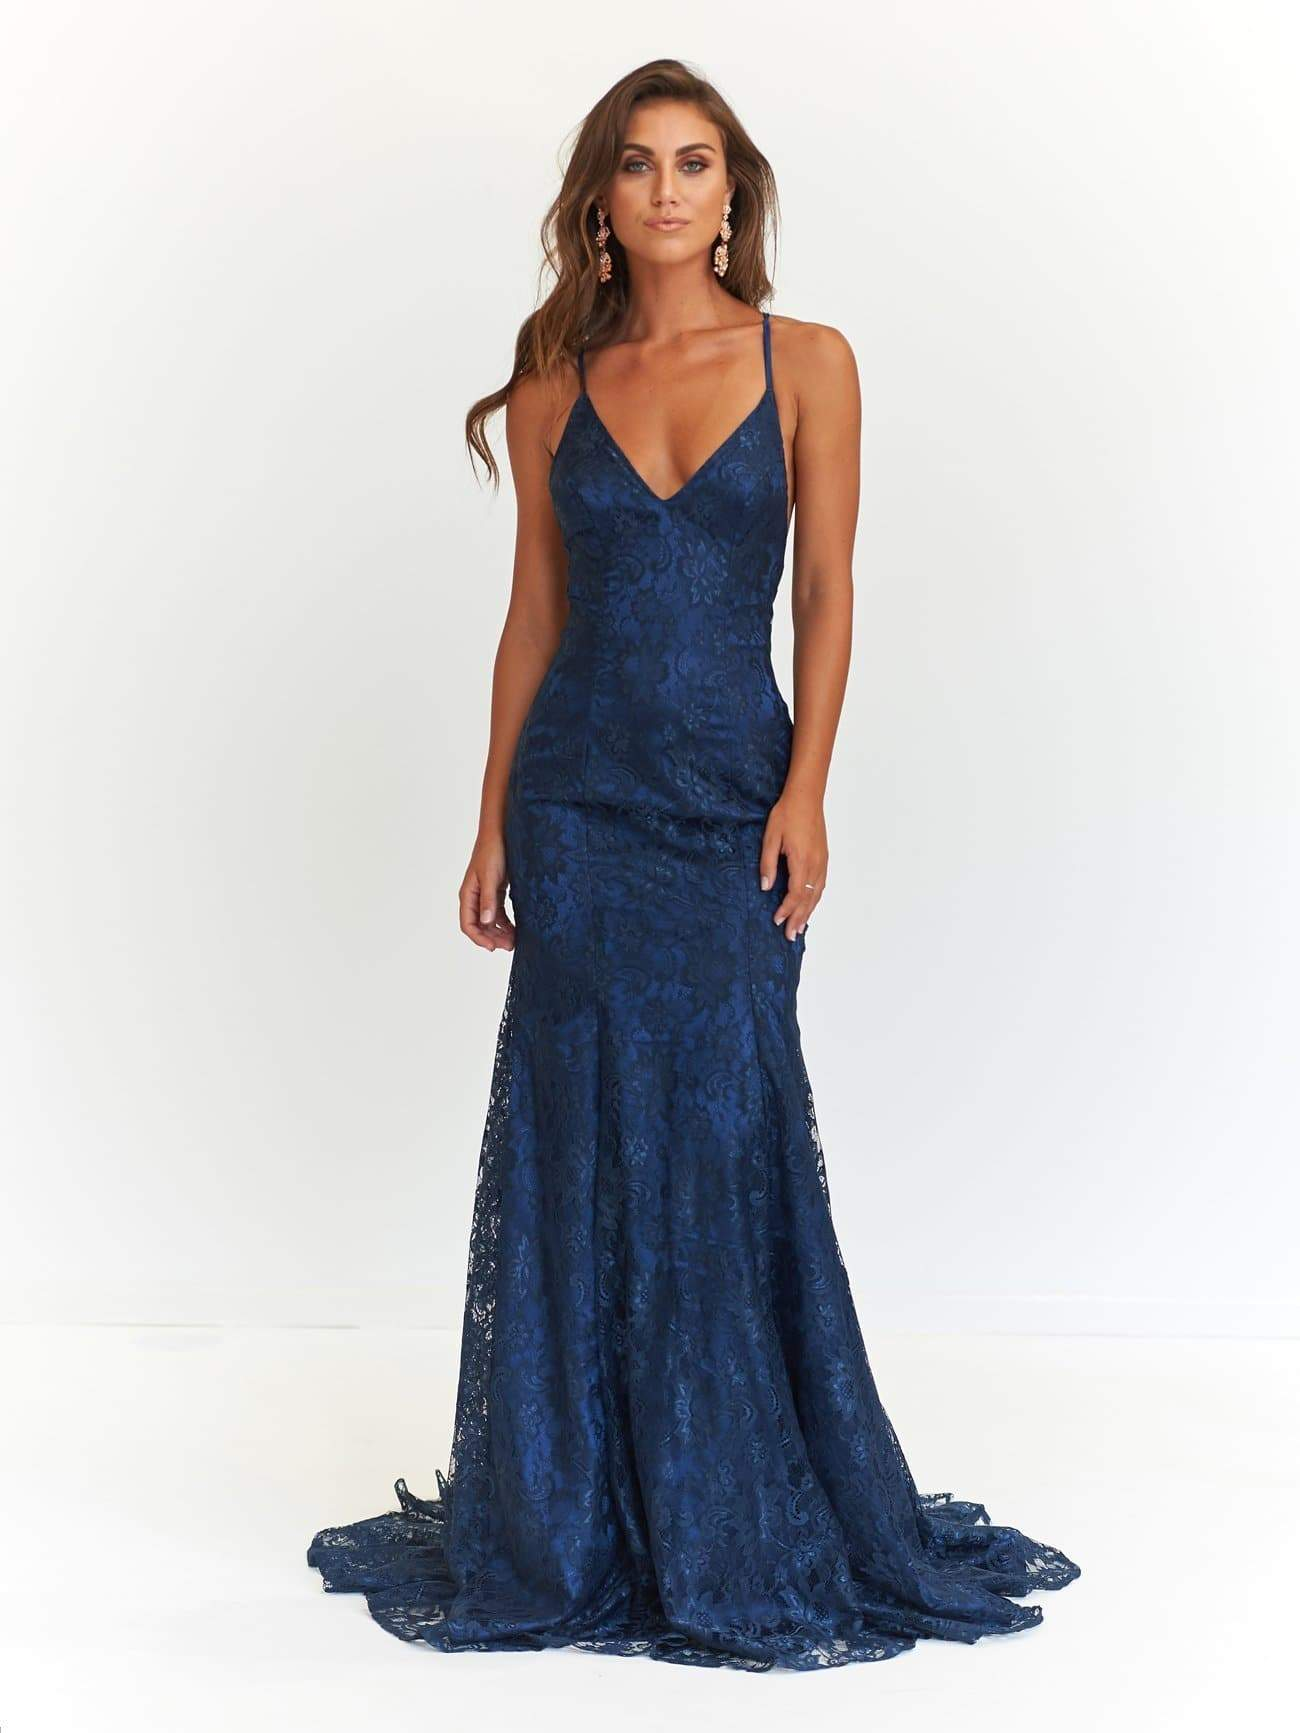 A&N Aisha - Navy Lace Gown with Tie Up Back and Mermaid Train